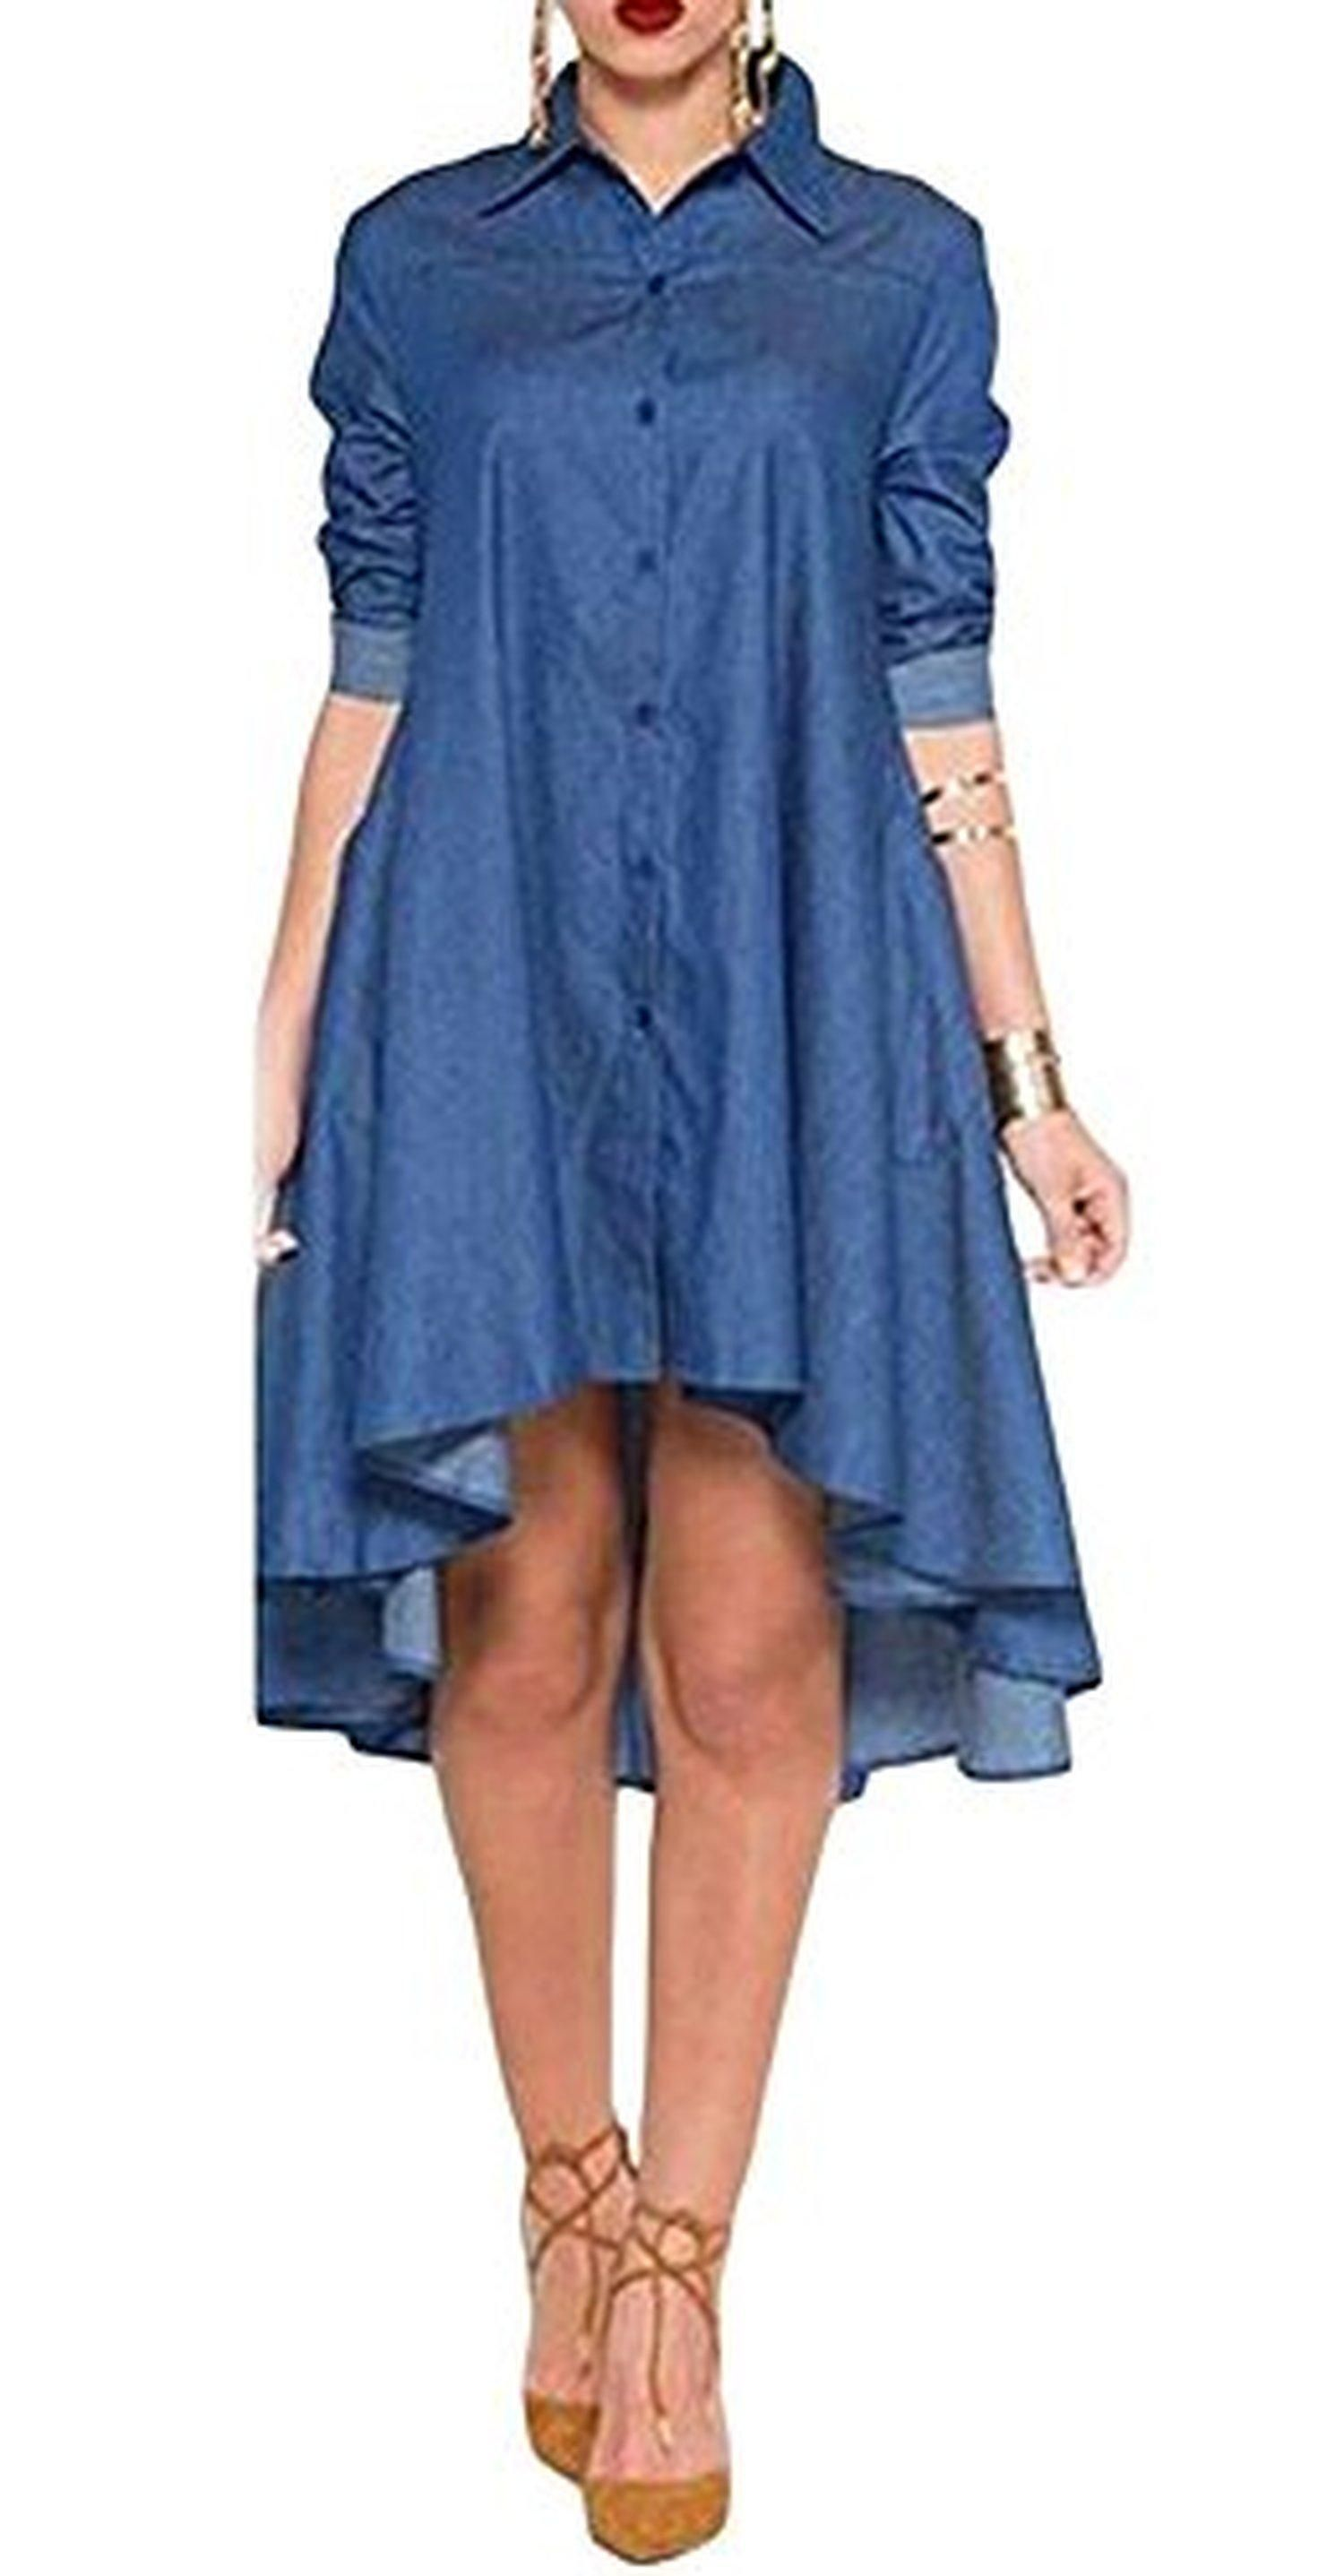 4e39ffa5ec8 Kearia Womens Casual Long Sleeve High-low Irregular Hem Loose Jean Denim  Shirt Dress Blue Small - Brought to you by Avarsha.com